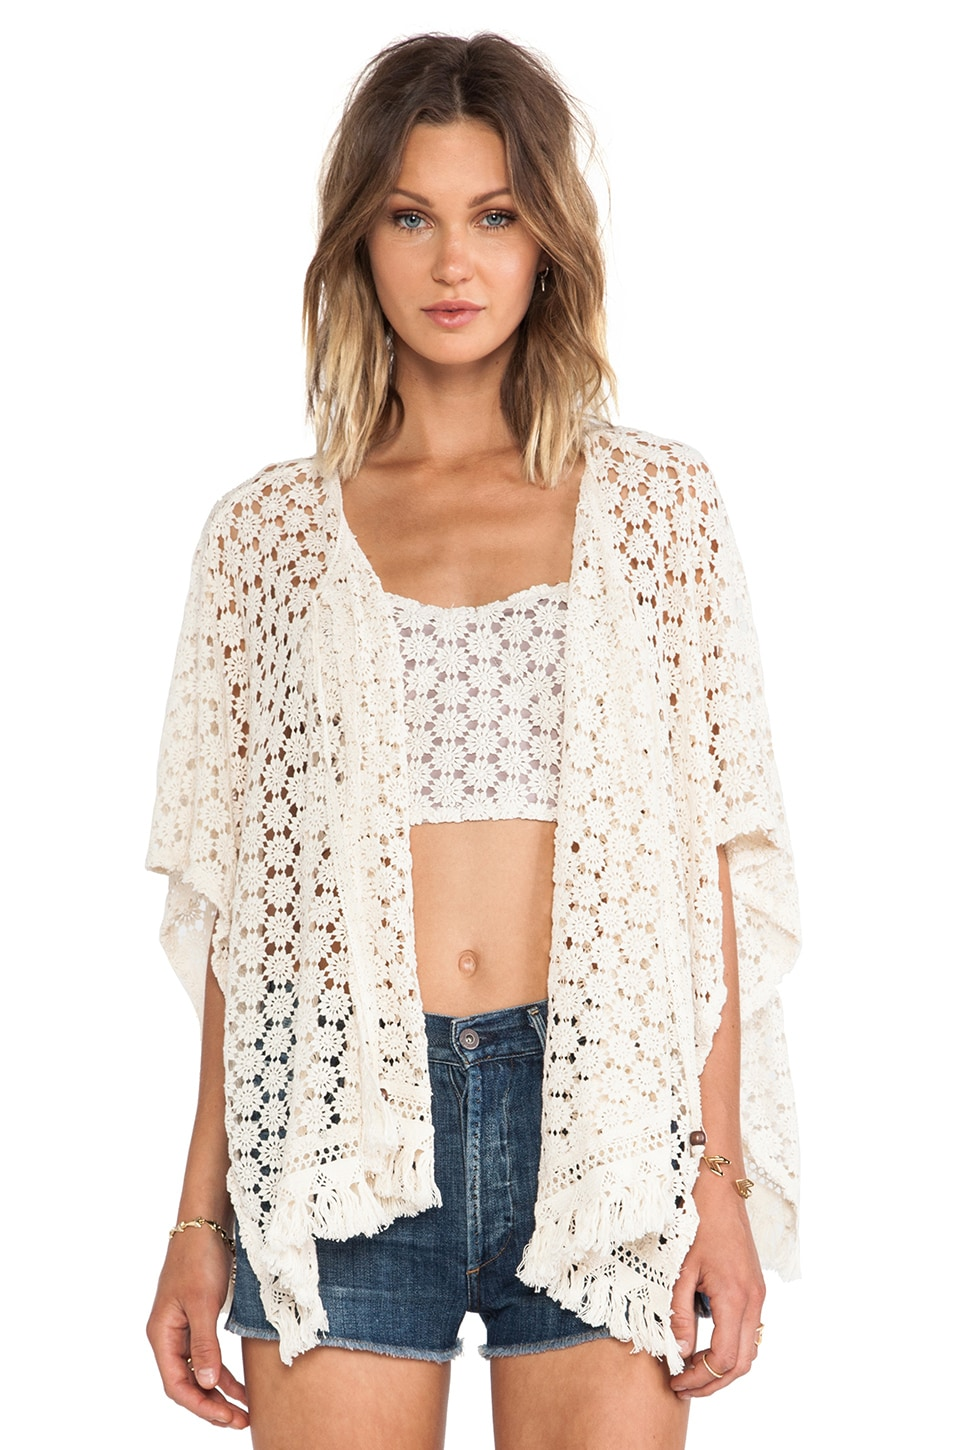 Gypsy Junkies Virginia Poncho in Daisy Lace